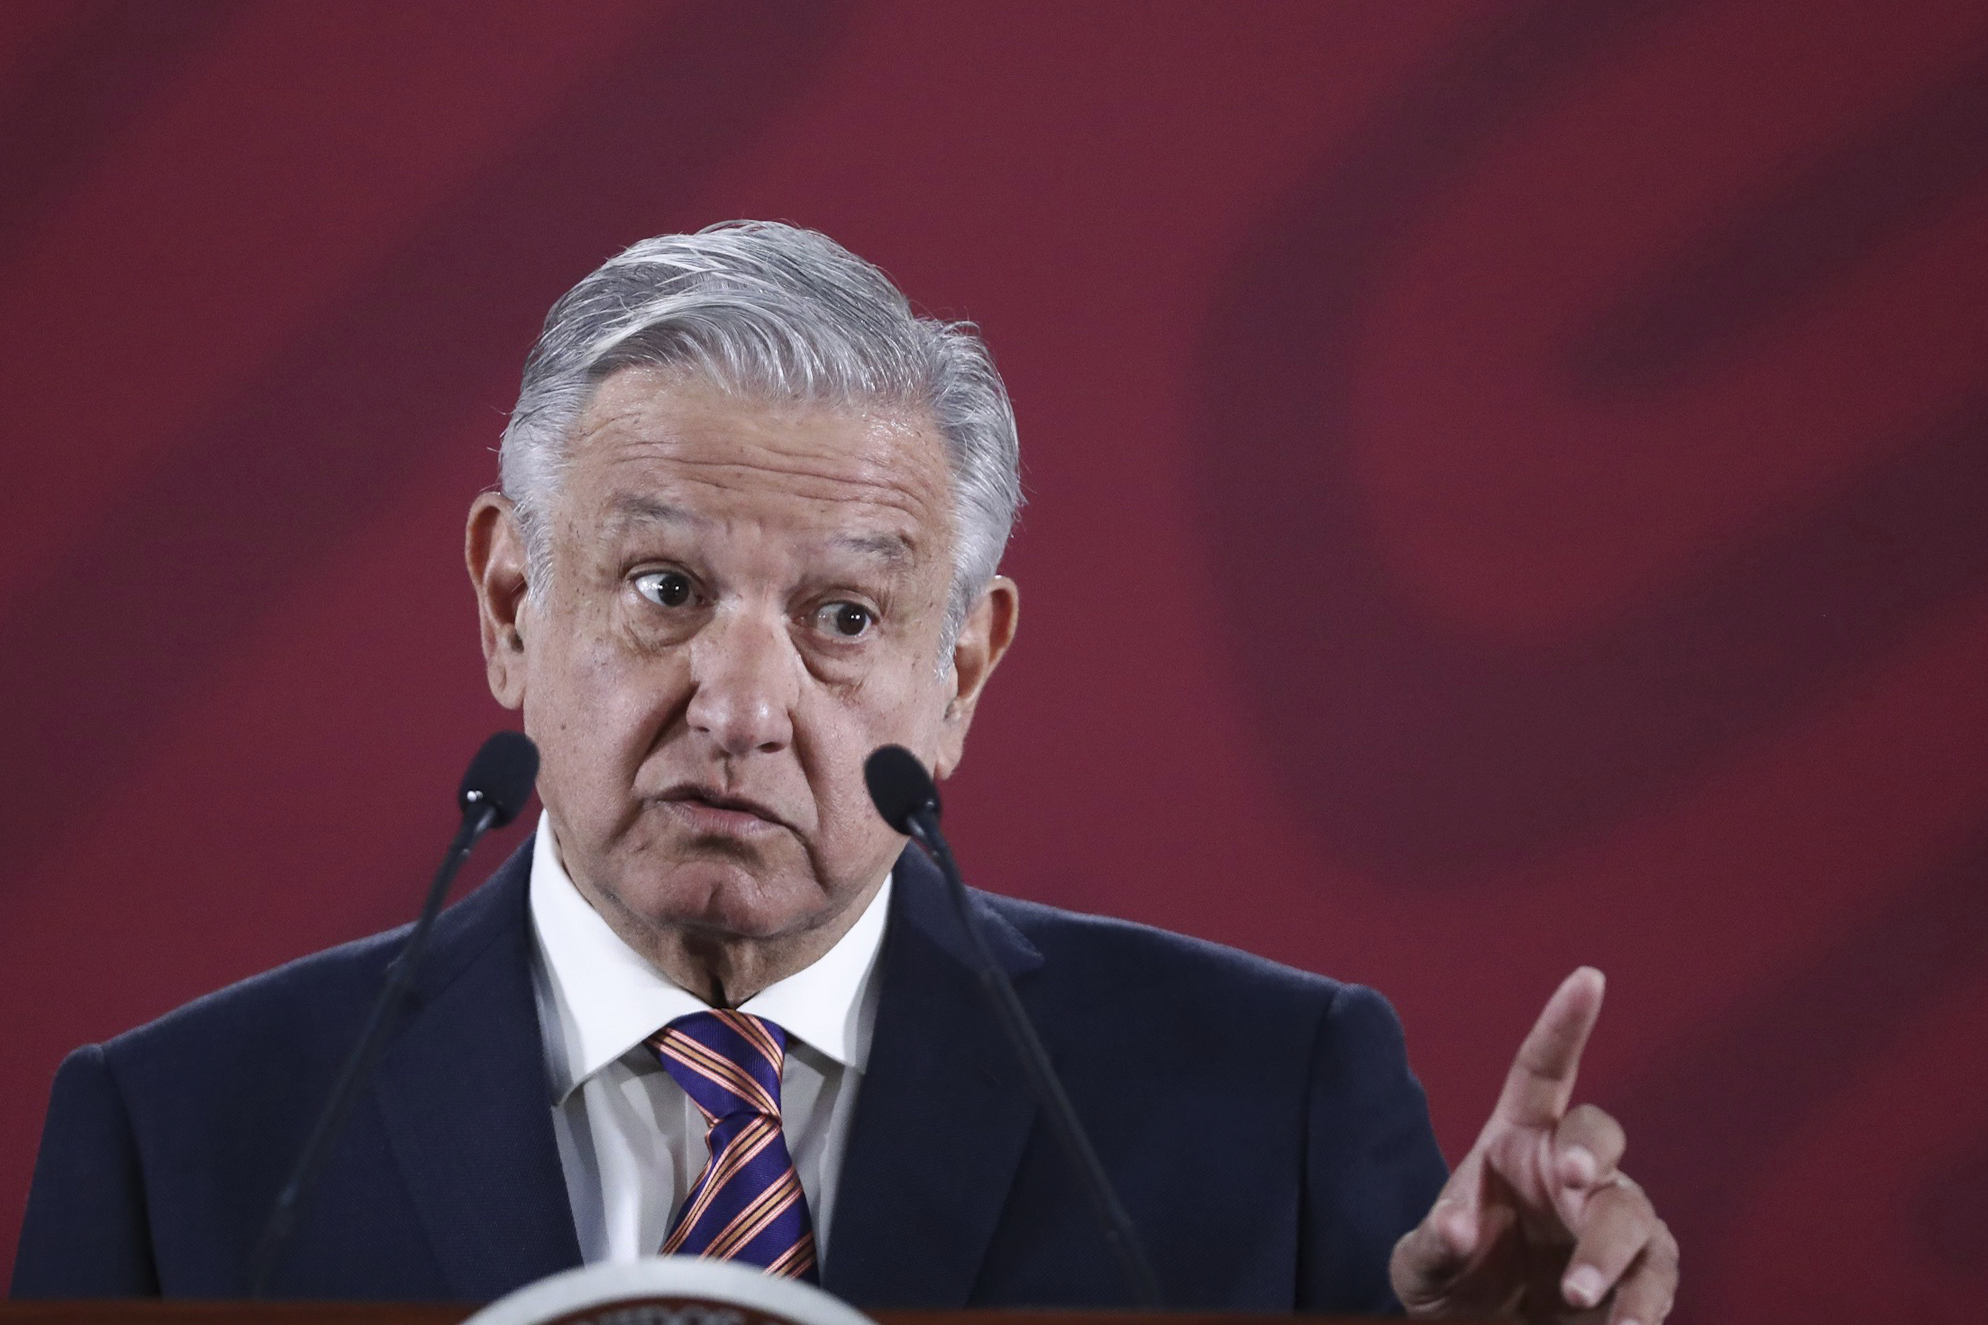 Mexico's President Has Been Compared to Trump, but He's Still Incredibly Popular in Mexico